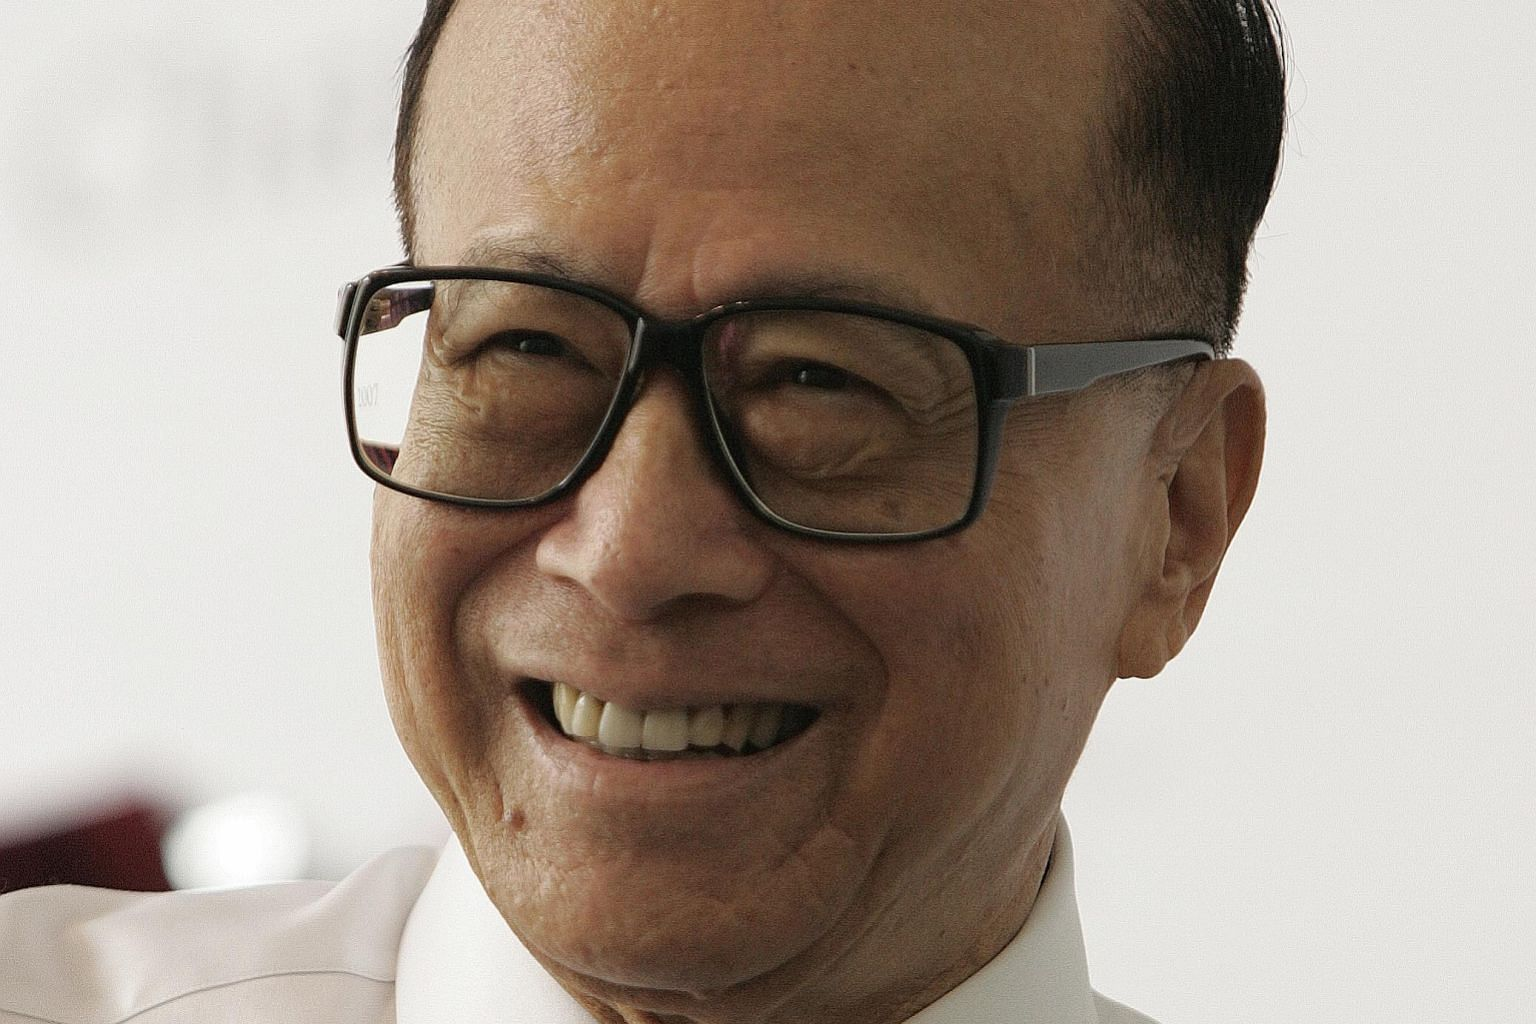 Mr Li Ka-shing is currently worth S$46 billion, according to the Bloomberg billionaires index.